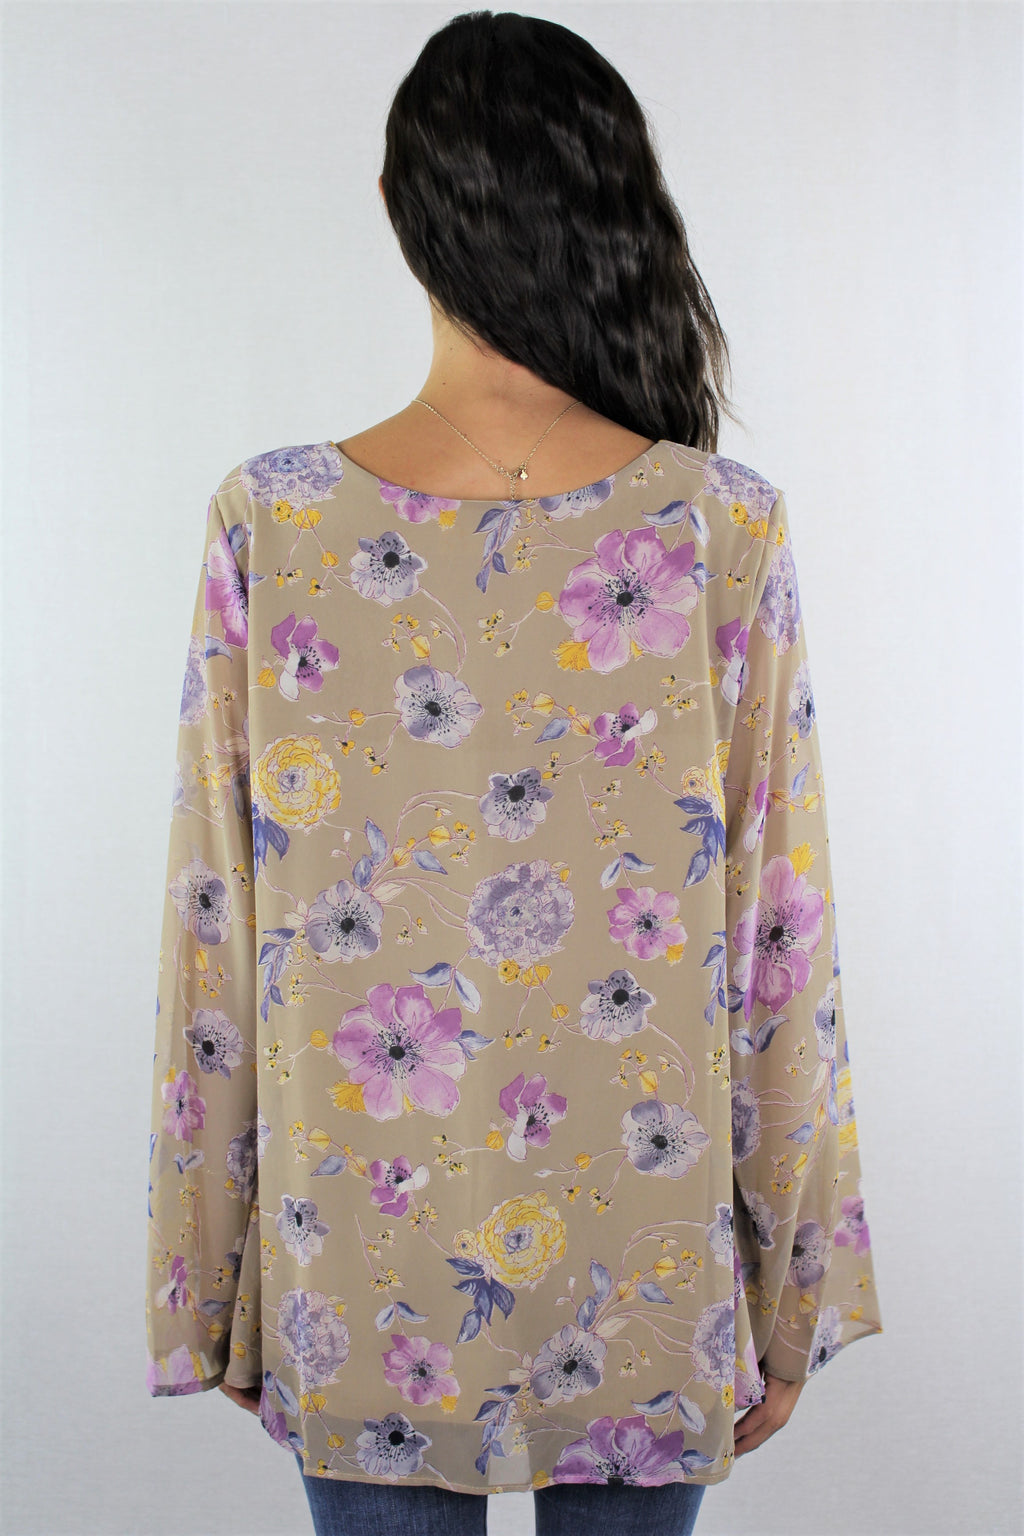 Women's Bell Sleeve V Neck Floral Top ***